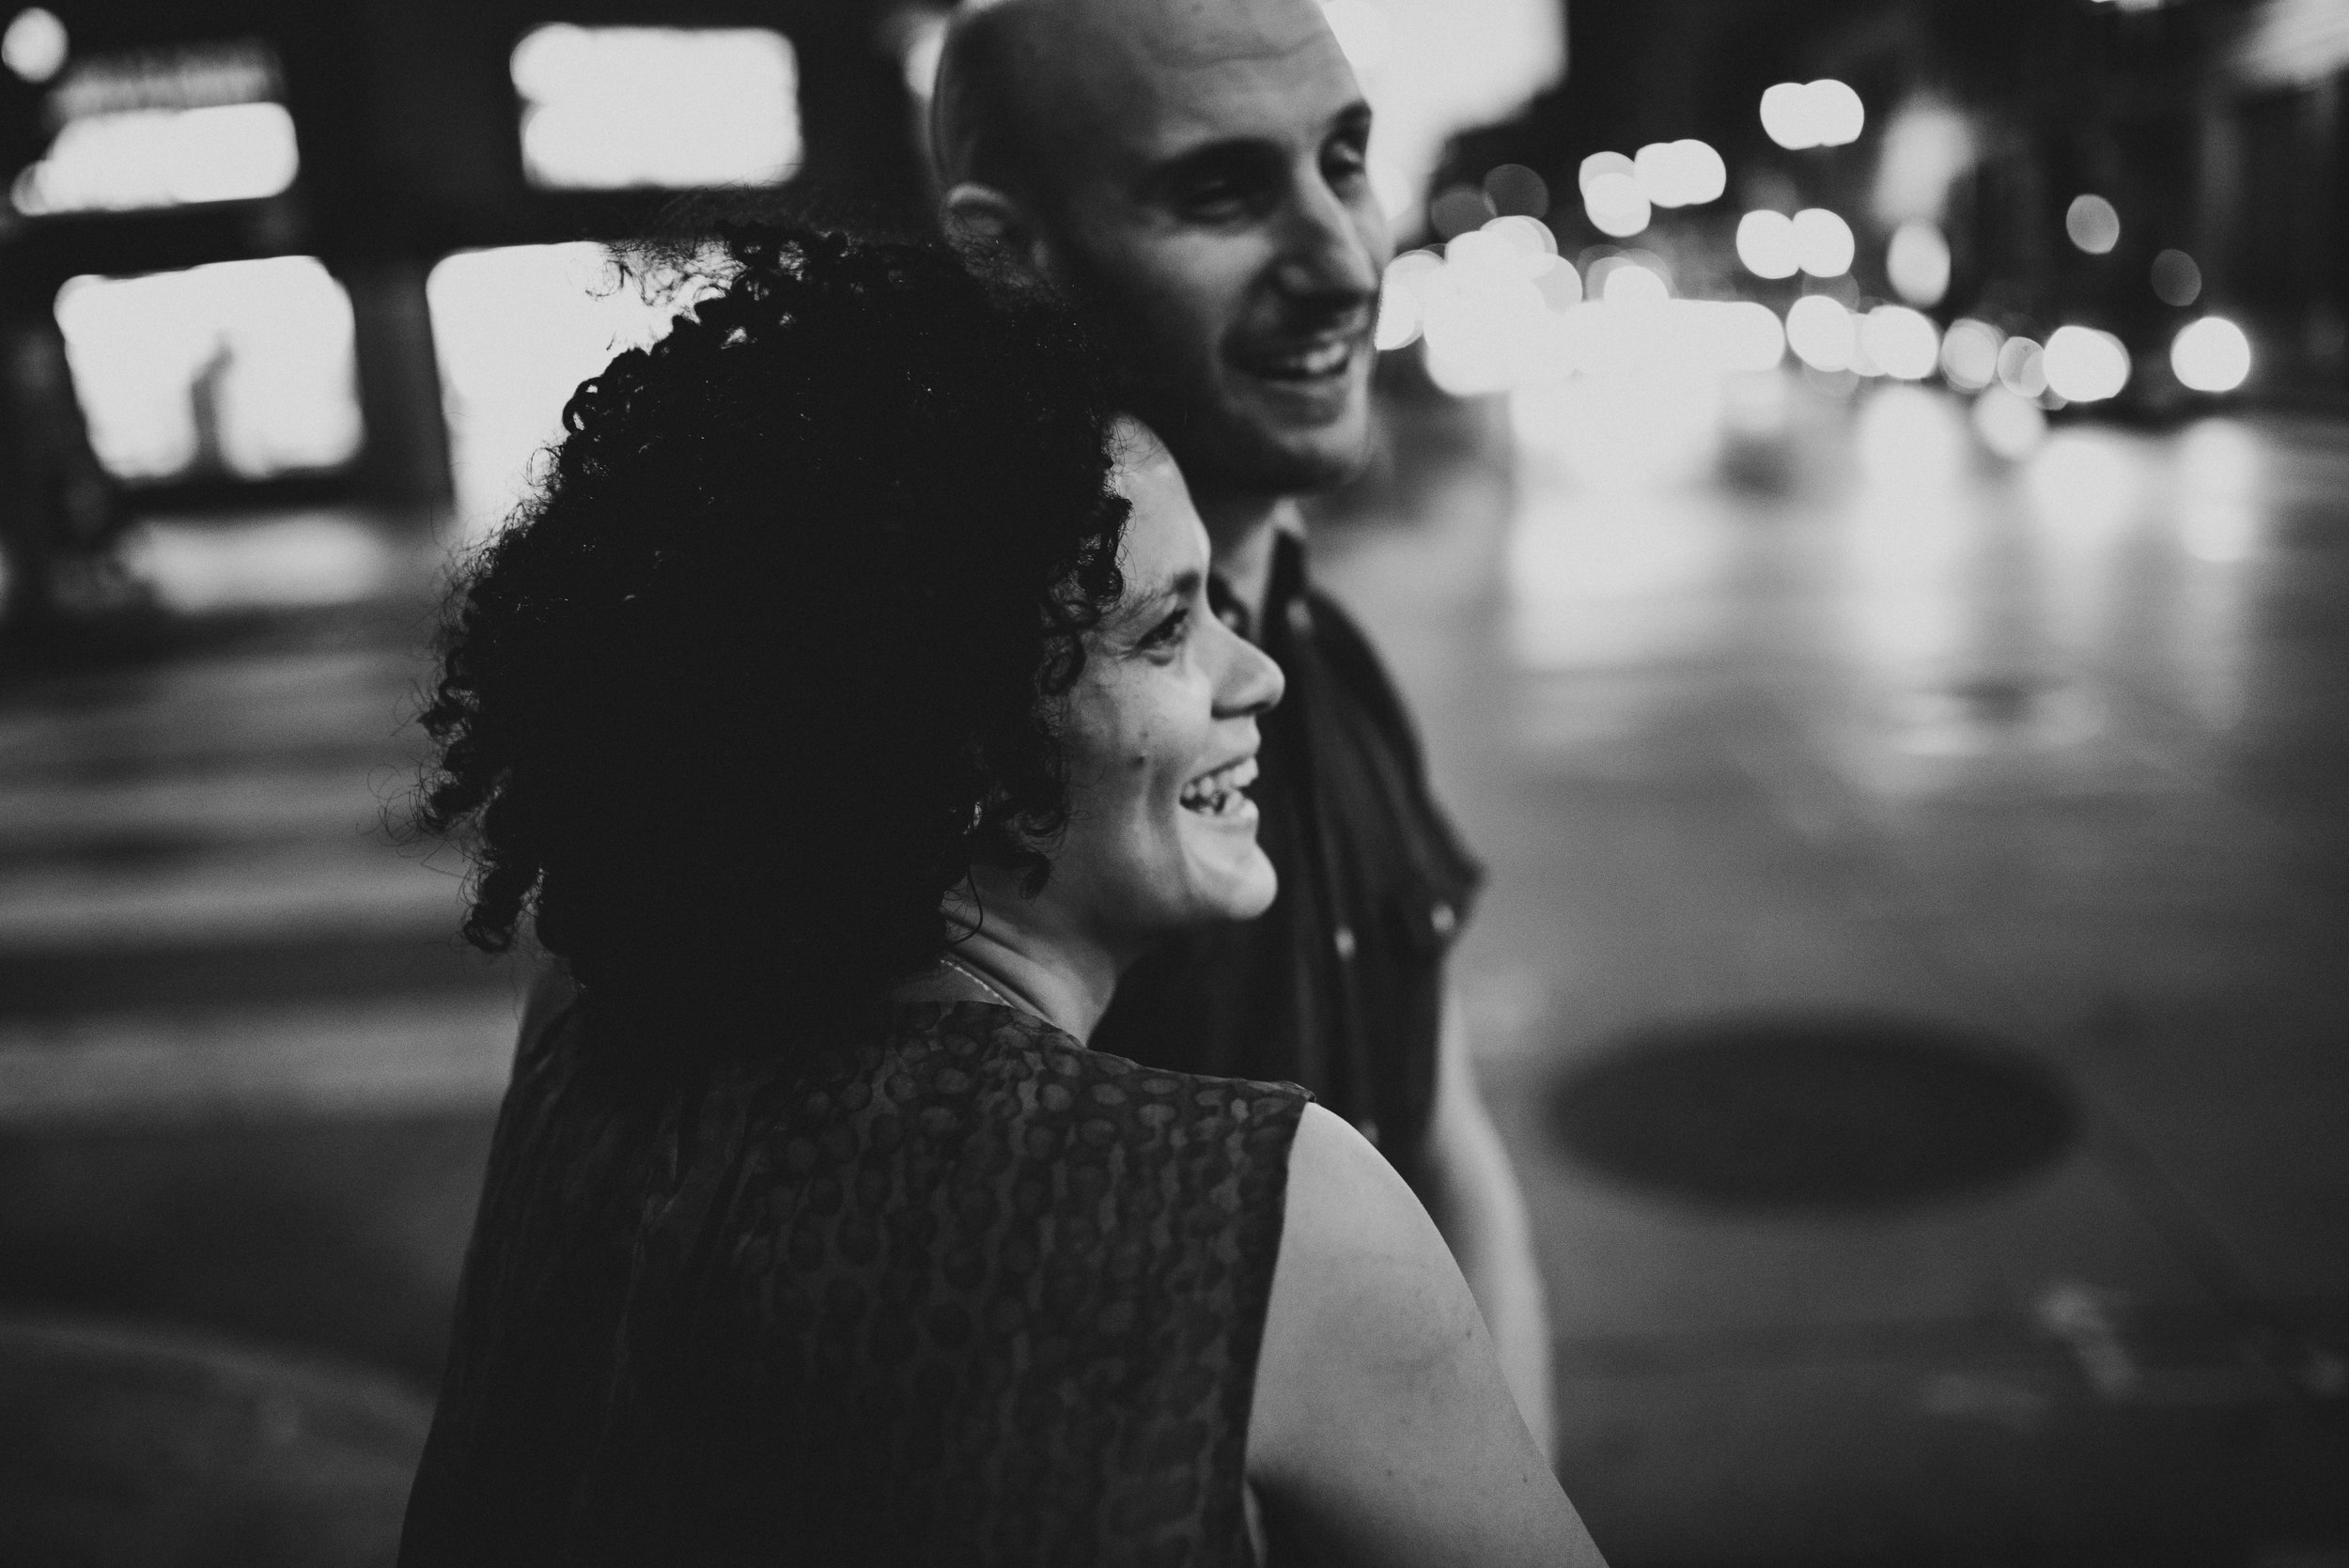 Best Engagement Photographer Los Angeles California by Mantas Kubilinskas-22.jpg